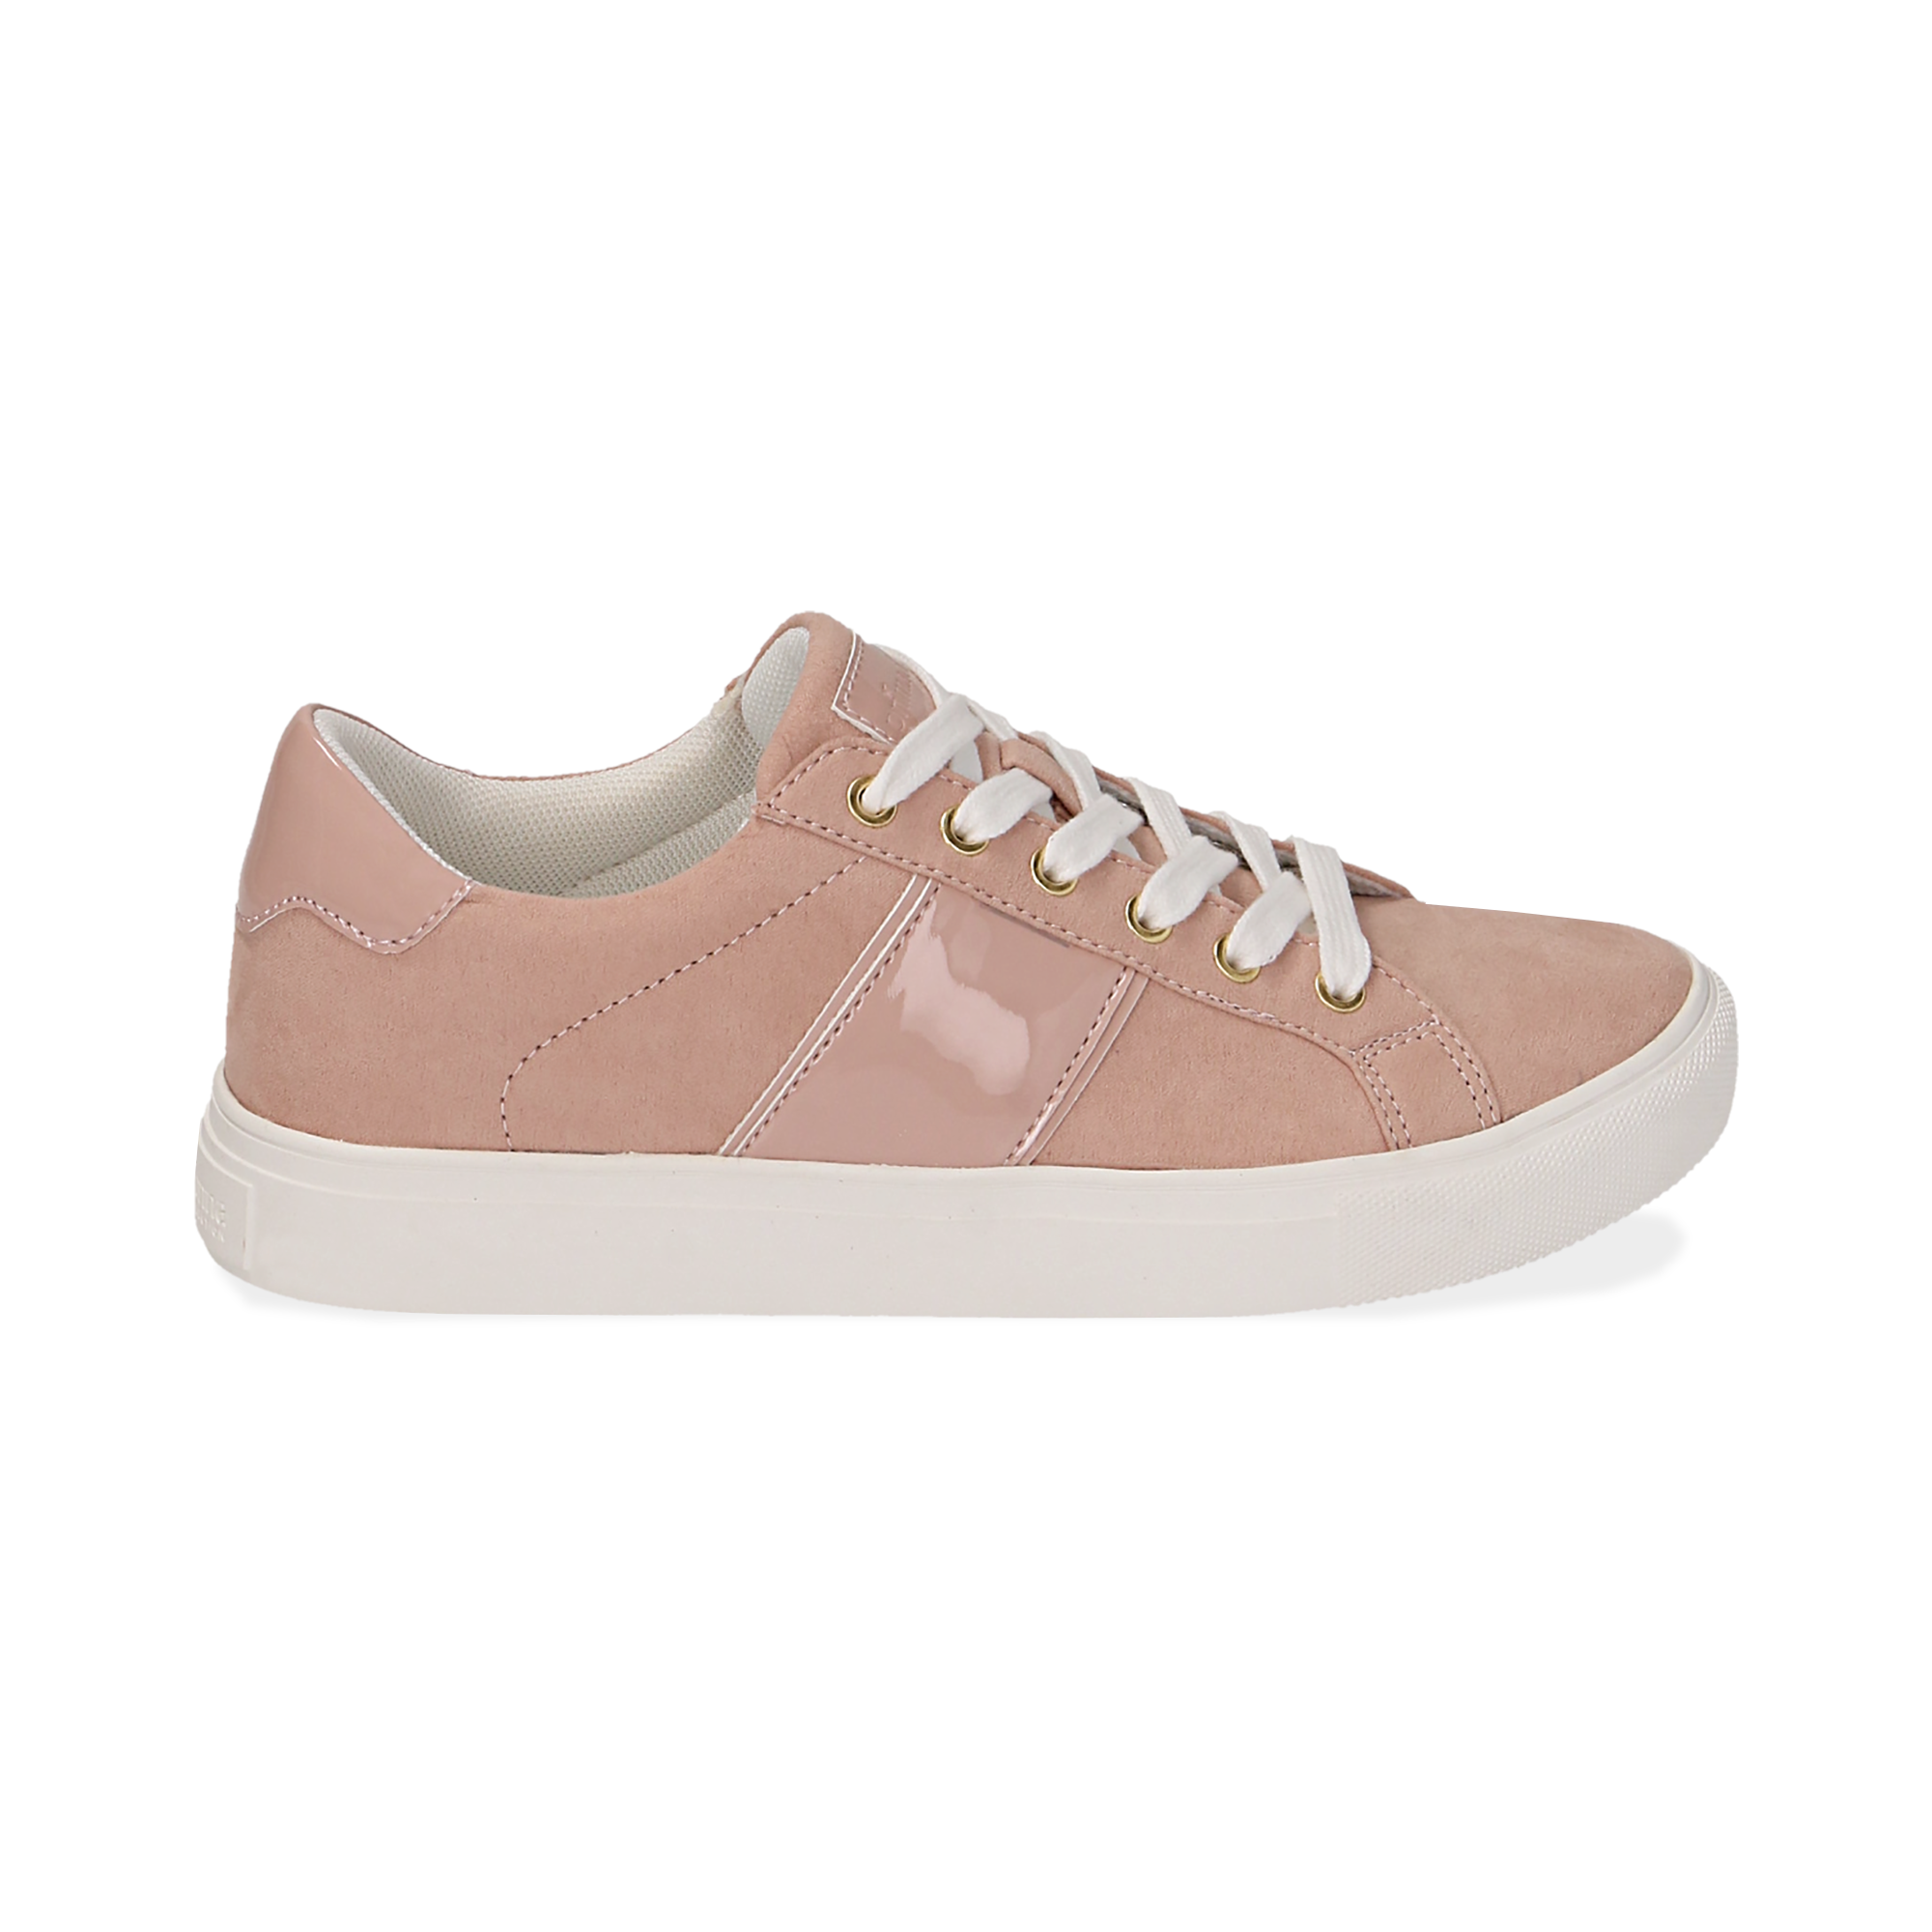 Sneakers de microfibra en color nude